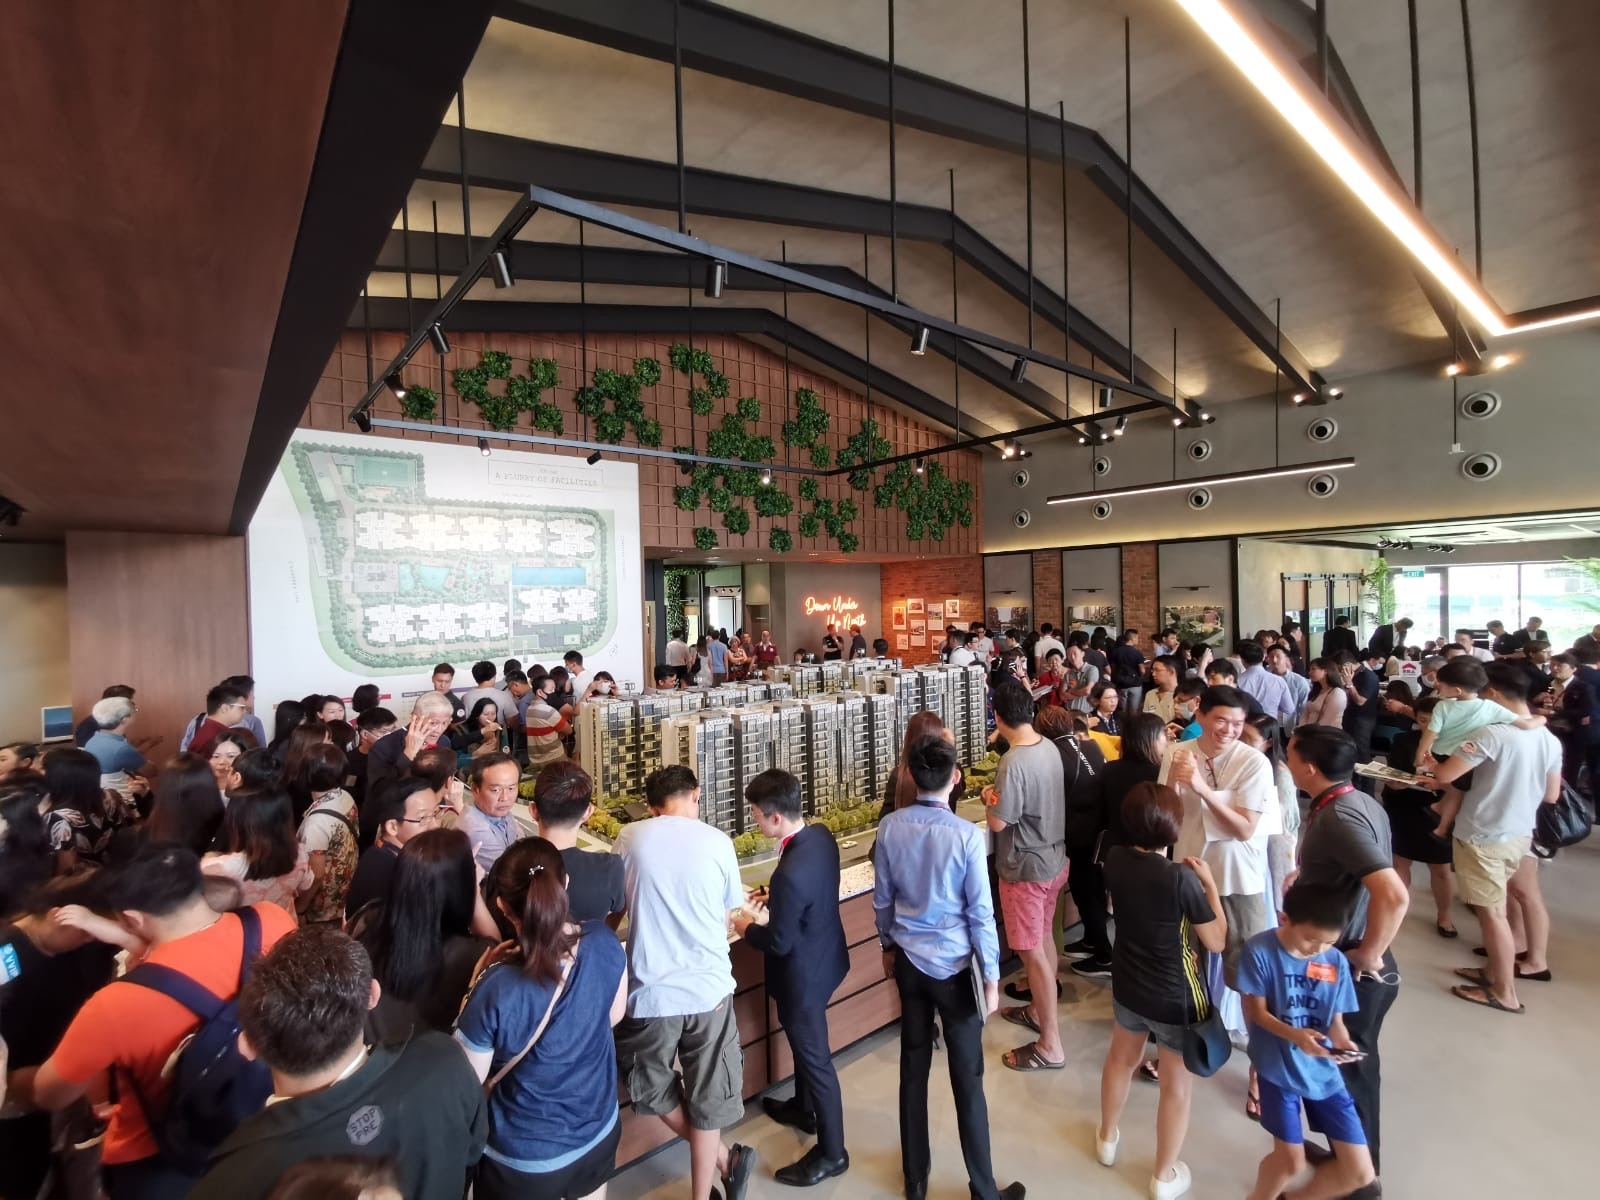 About 1,500 people had turned up at the preview on the first day the sales gallery opened on Jan 31 (Photo: Albert Chua/EdgeProp Singapore)